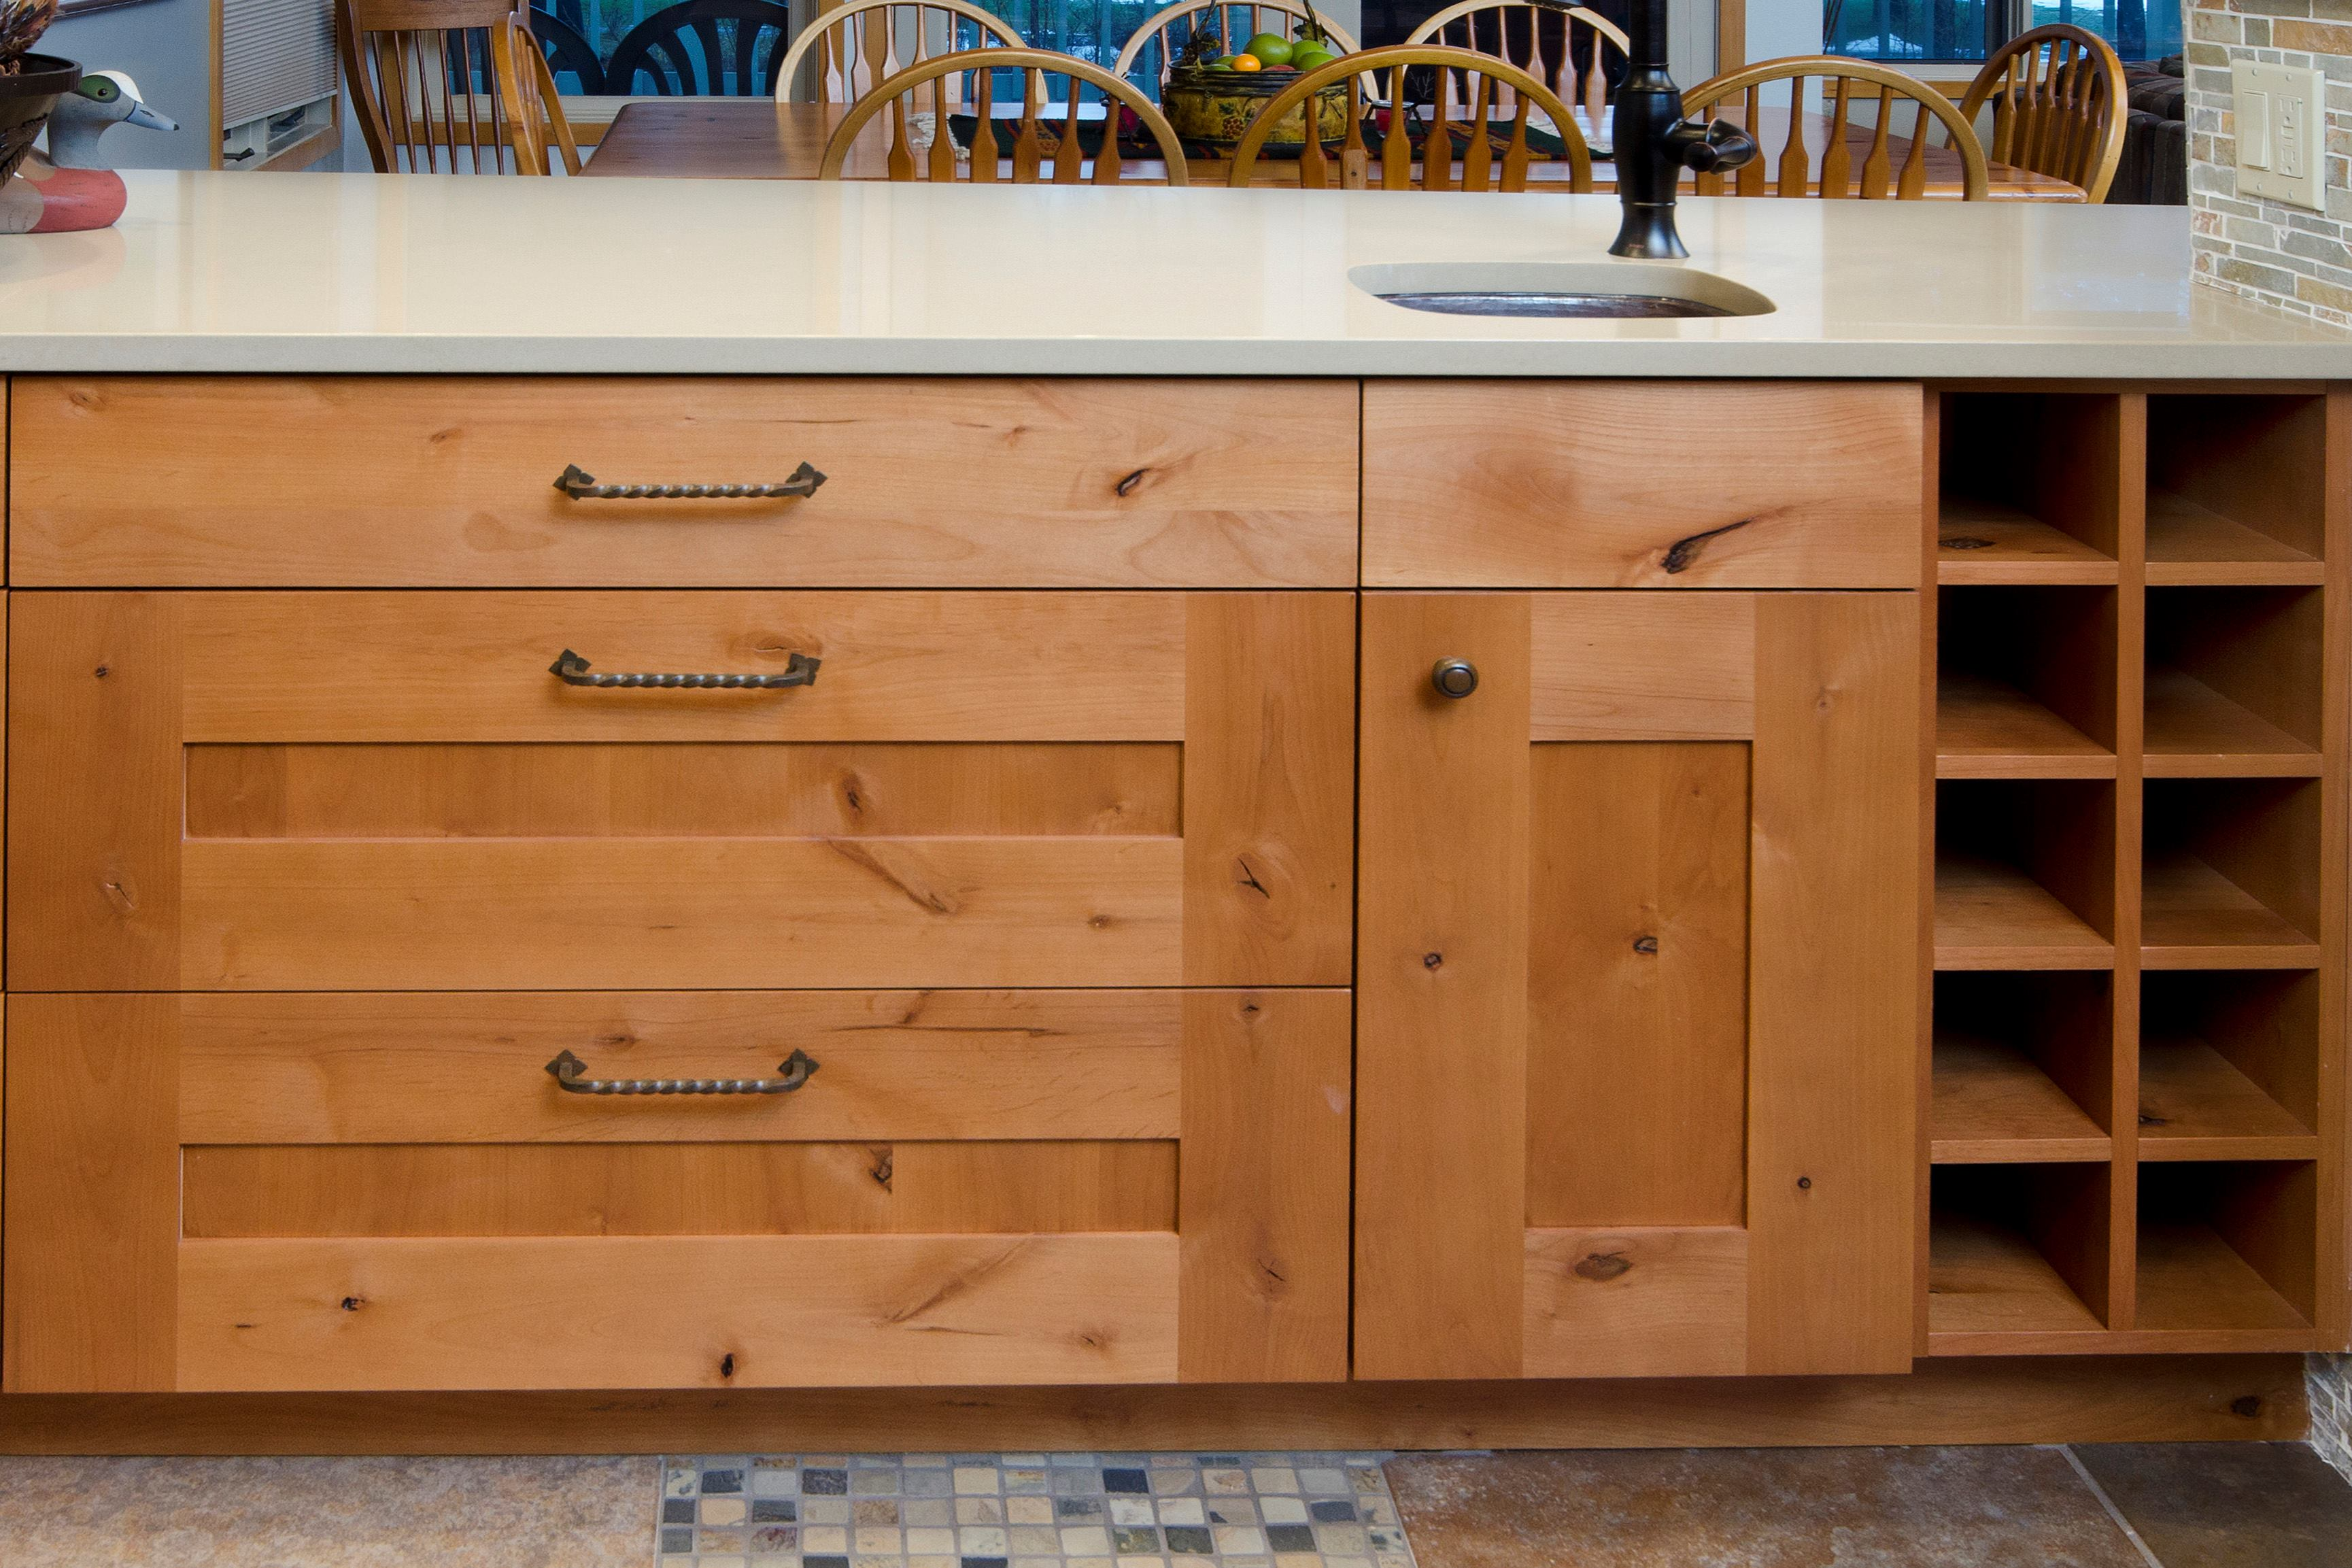 Product: Declare Labeled Cabinets From Neil Kelly| EcoBuilding Pulse  Magazine | Products, Green Products, Formaldehyde Free Products, Low VOC,  Cabinets, ...